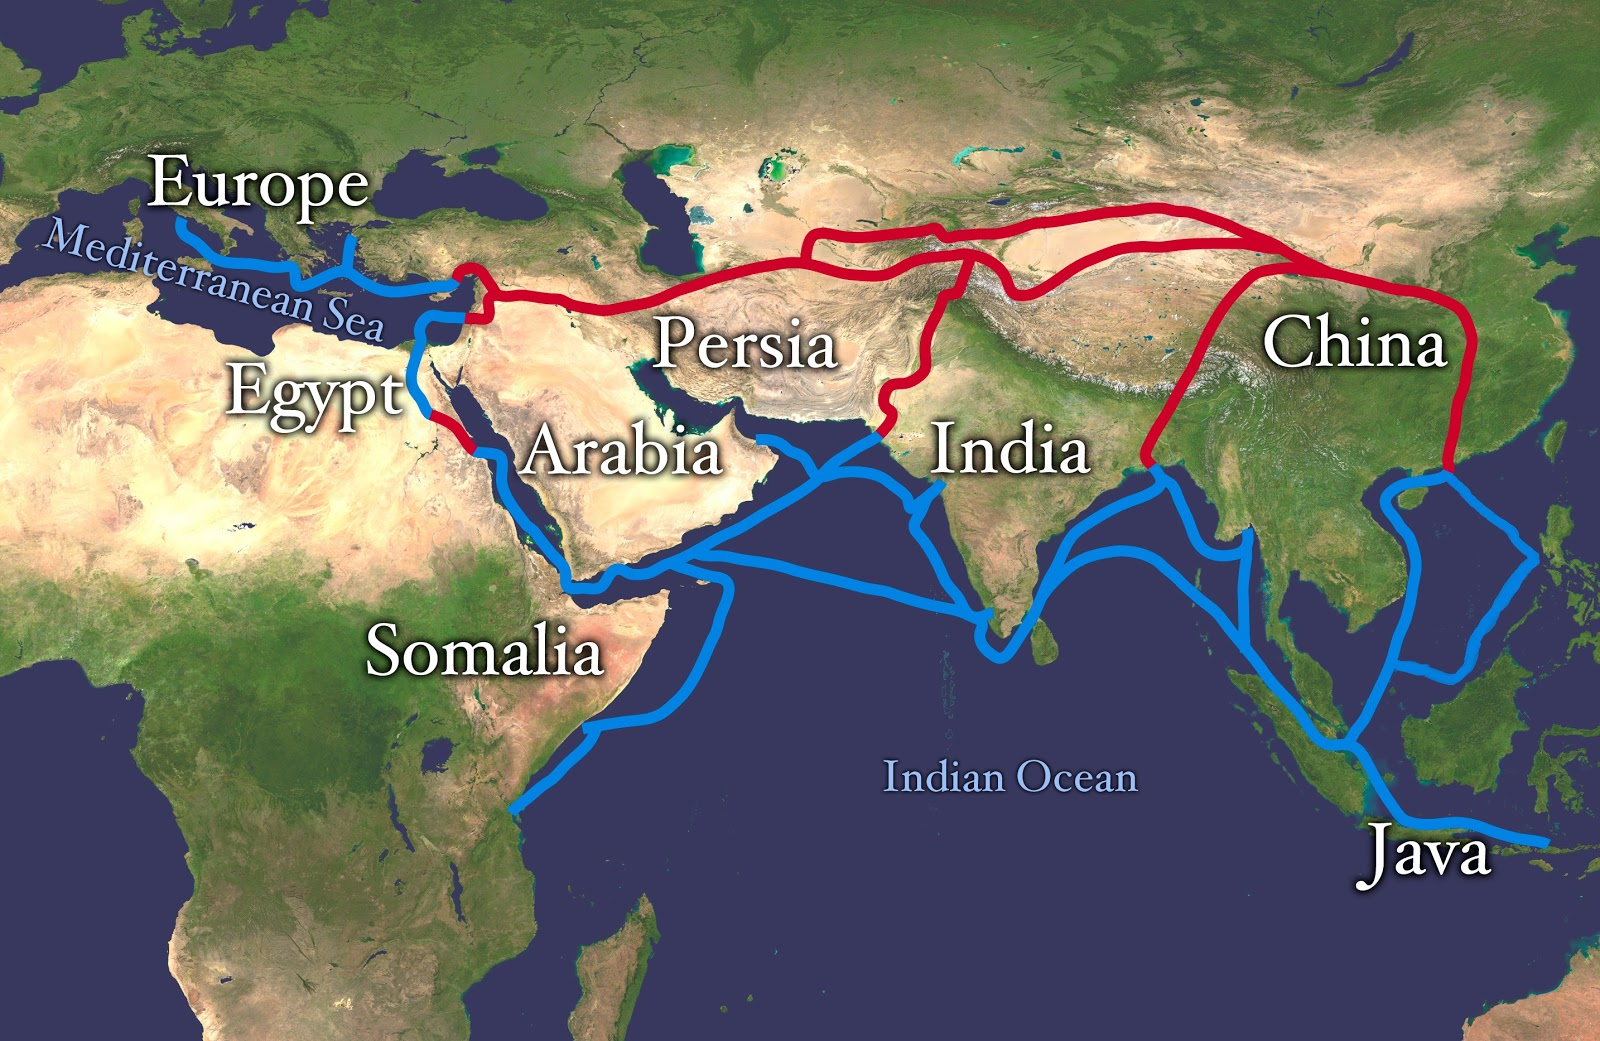 The Great Silk Road was passing through territory of Kyrgyzstan